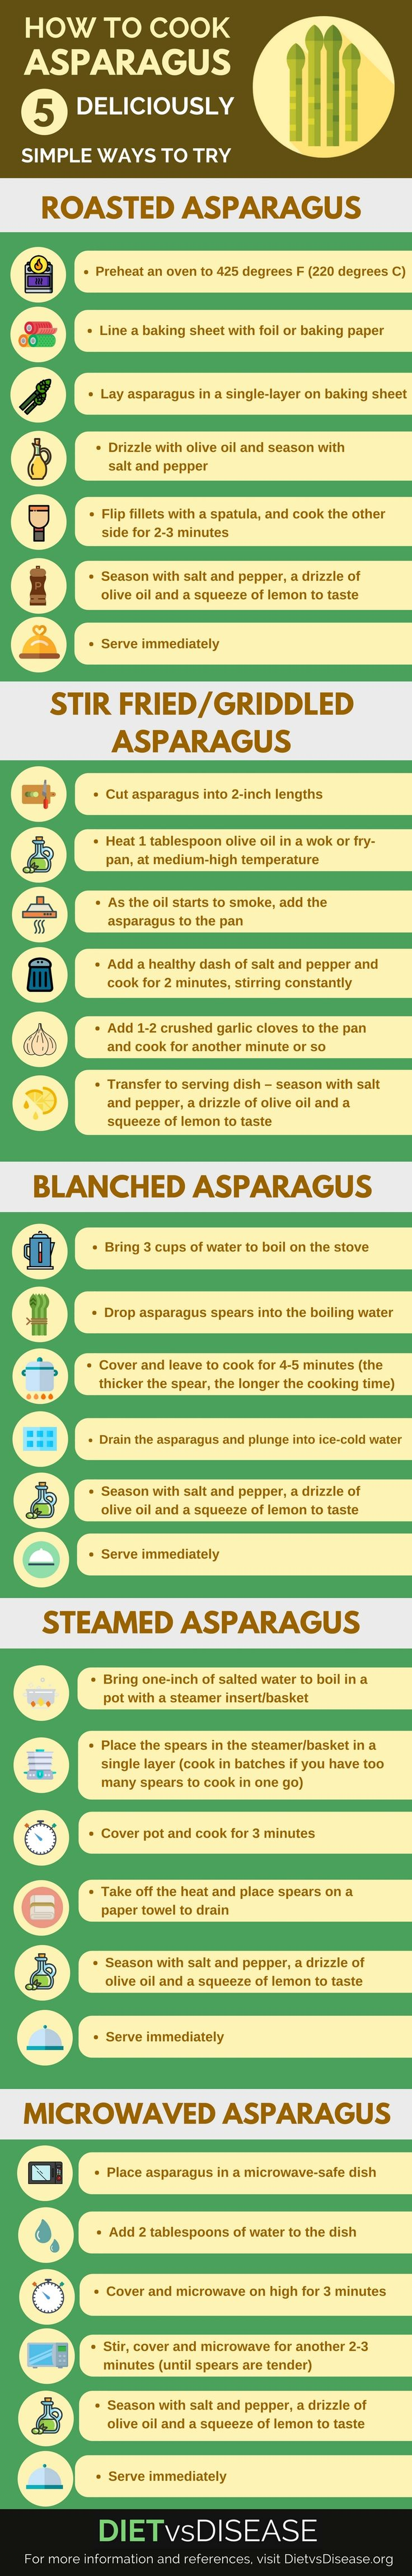 Asparagus is a delicious and popular vegetable. But how on earth do you cook it? This article looks at how to cook asparagus in 6 simple ways: https://www.dietvsdisease.org/how-to-cook-asparagus/